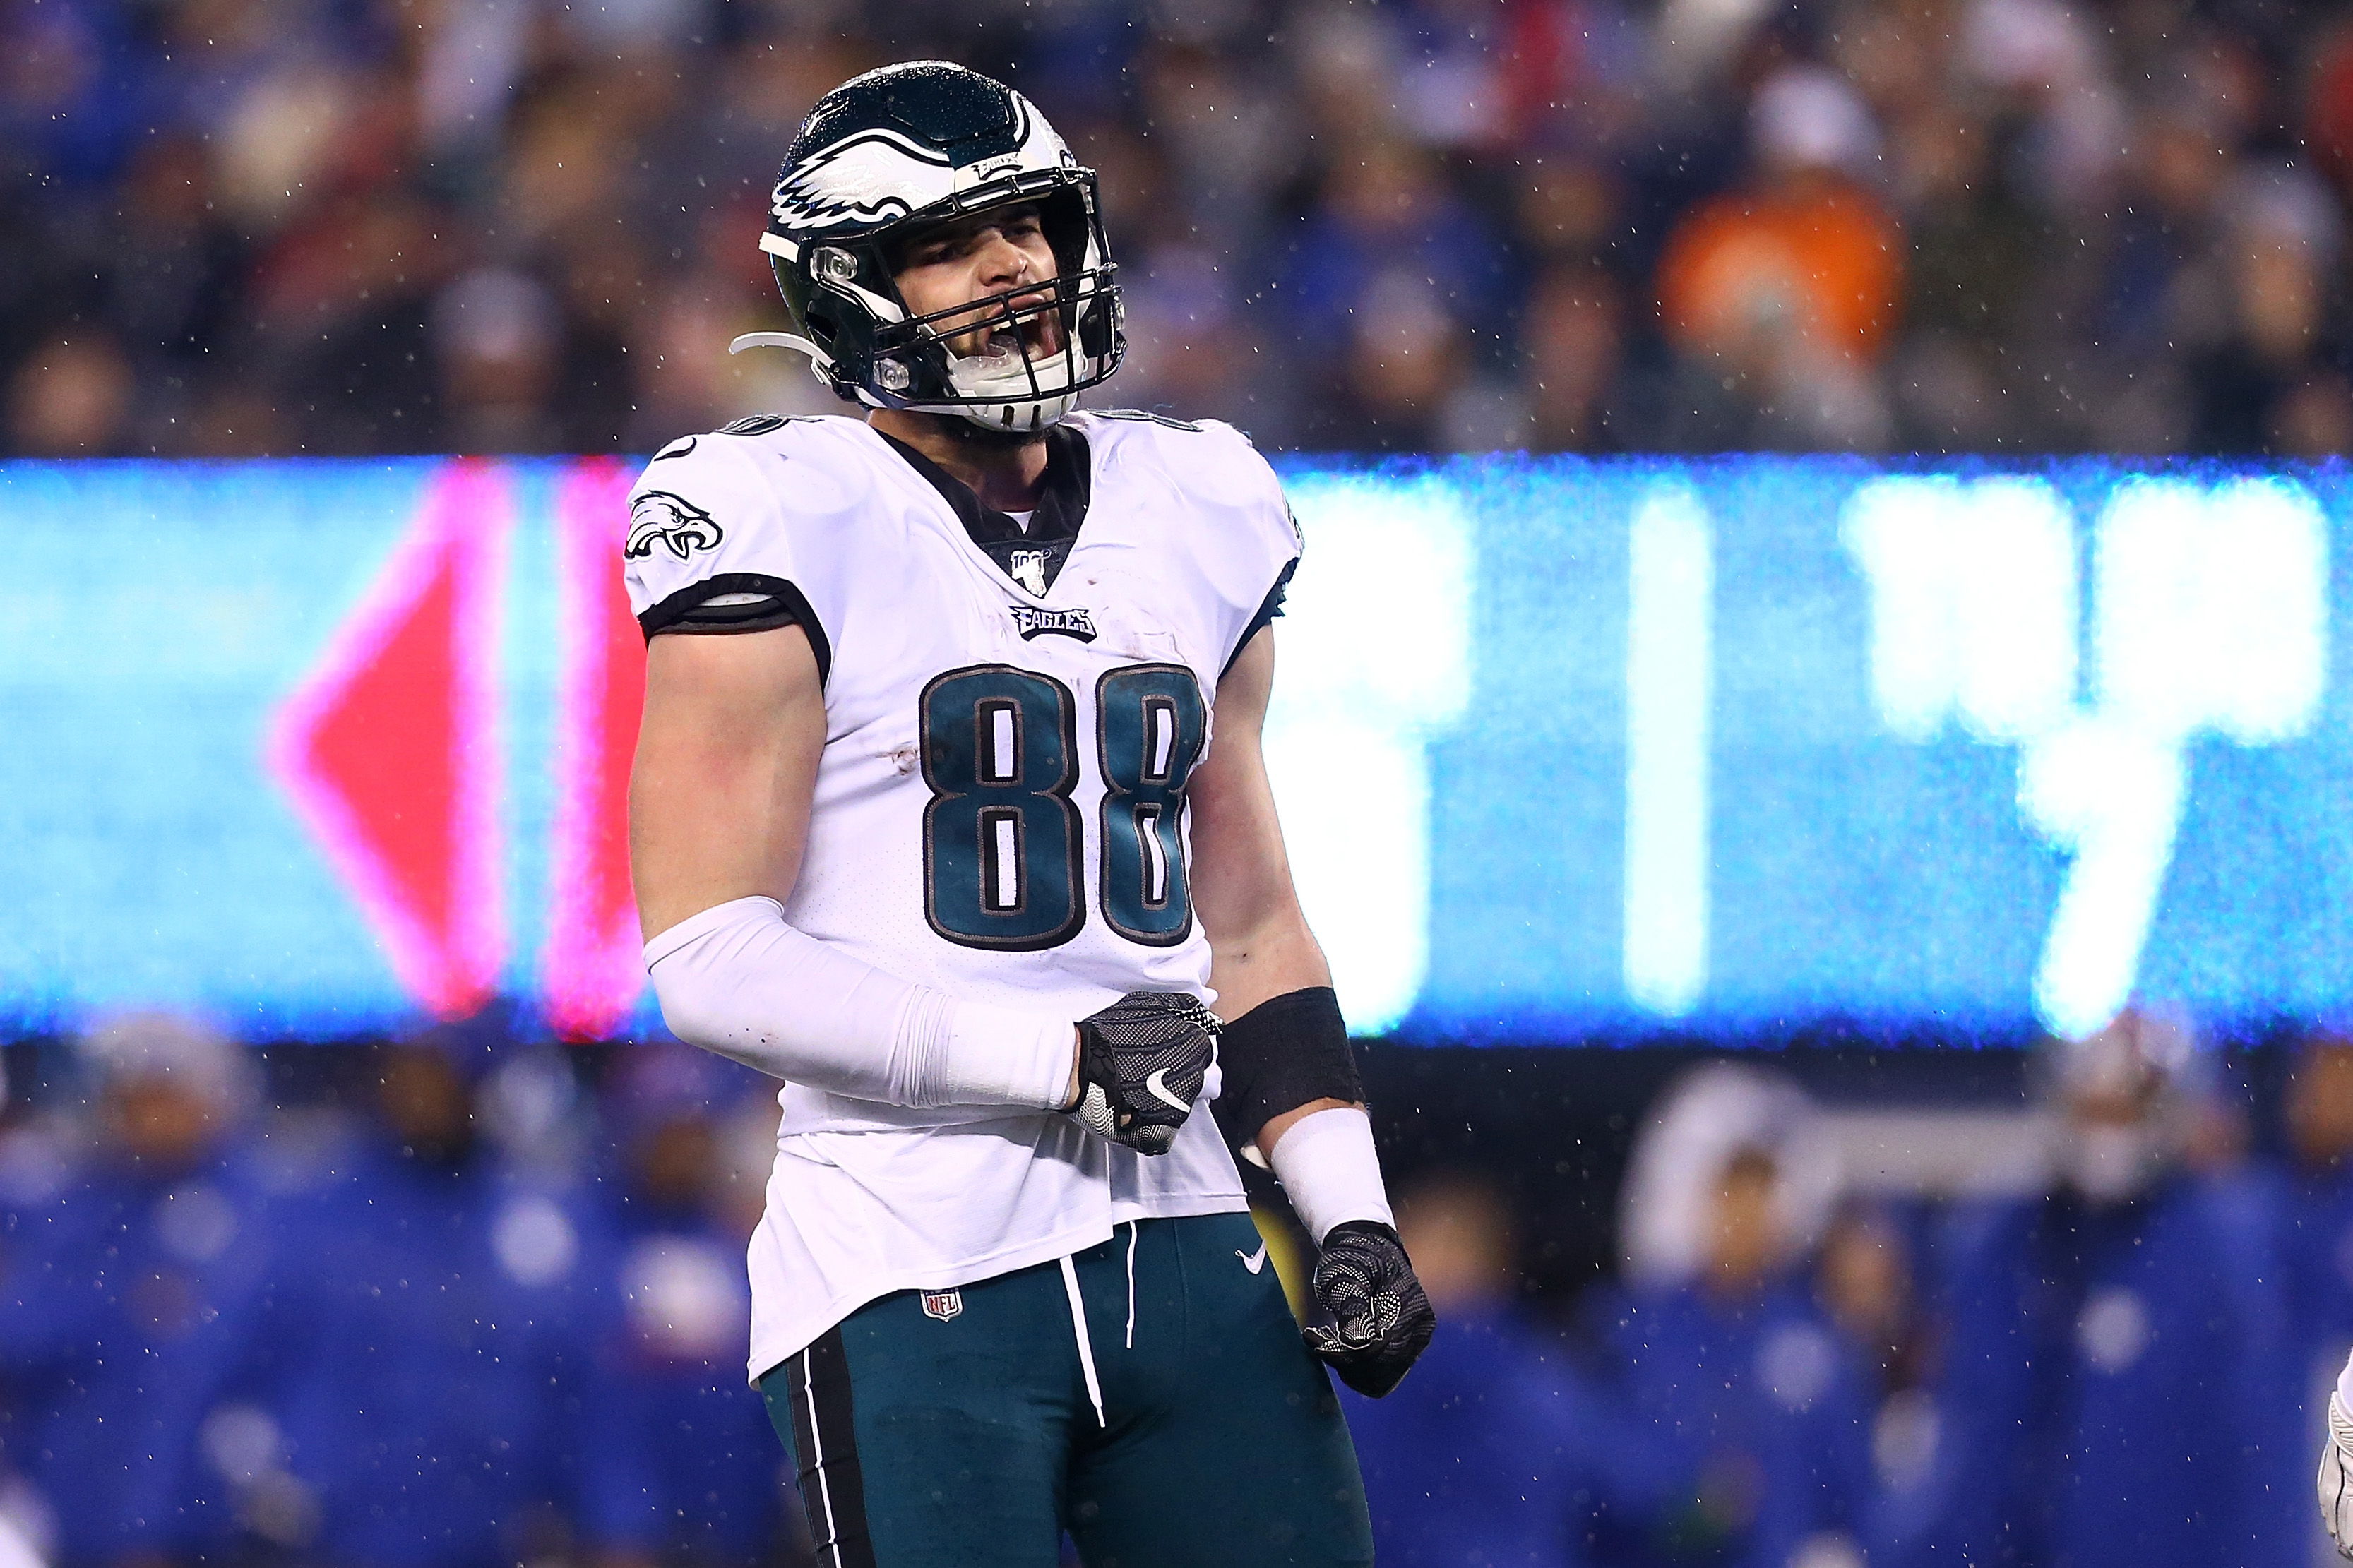 A chilling video of Dallas Goedert getting knocked out cold in a bar surfaced Sunday, and it didn't look great for the Eagles tight end.